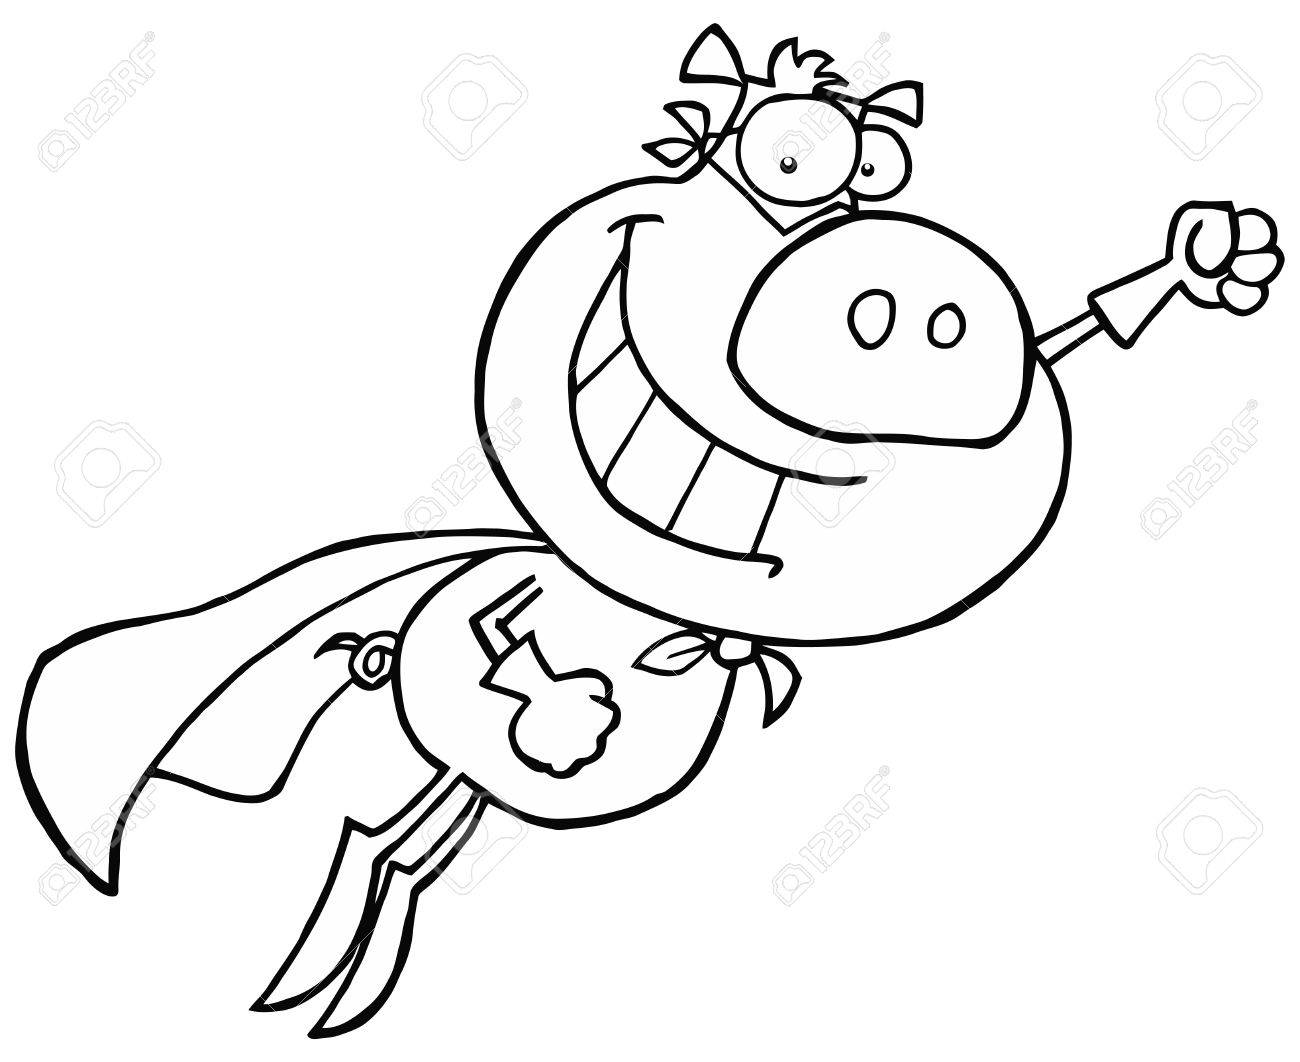 Black And White Super Pig Flying With A Cape Stock Vector - 16598165